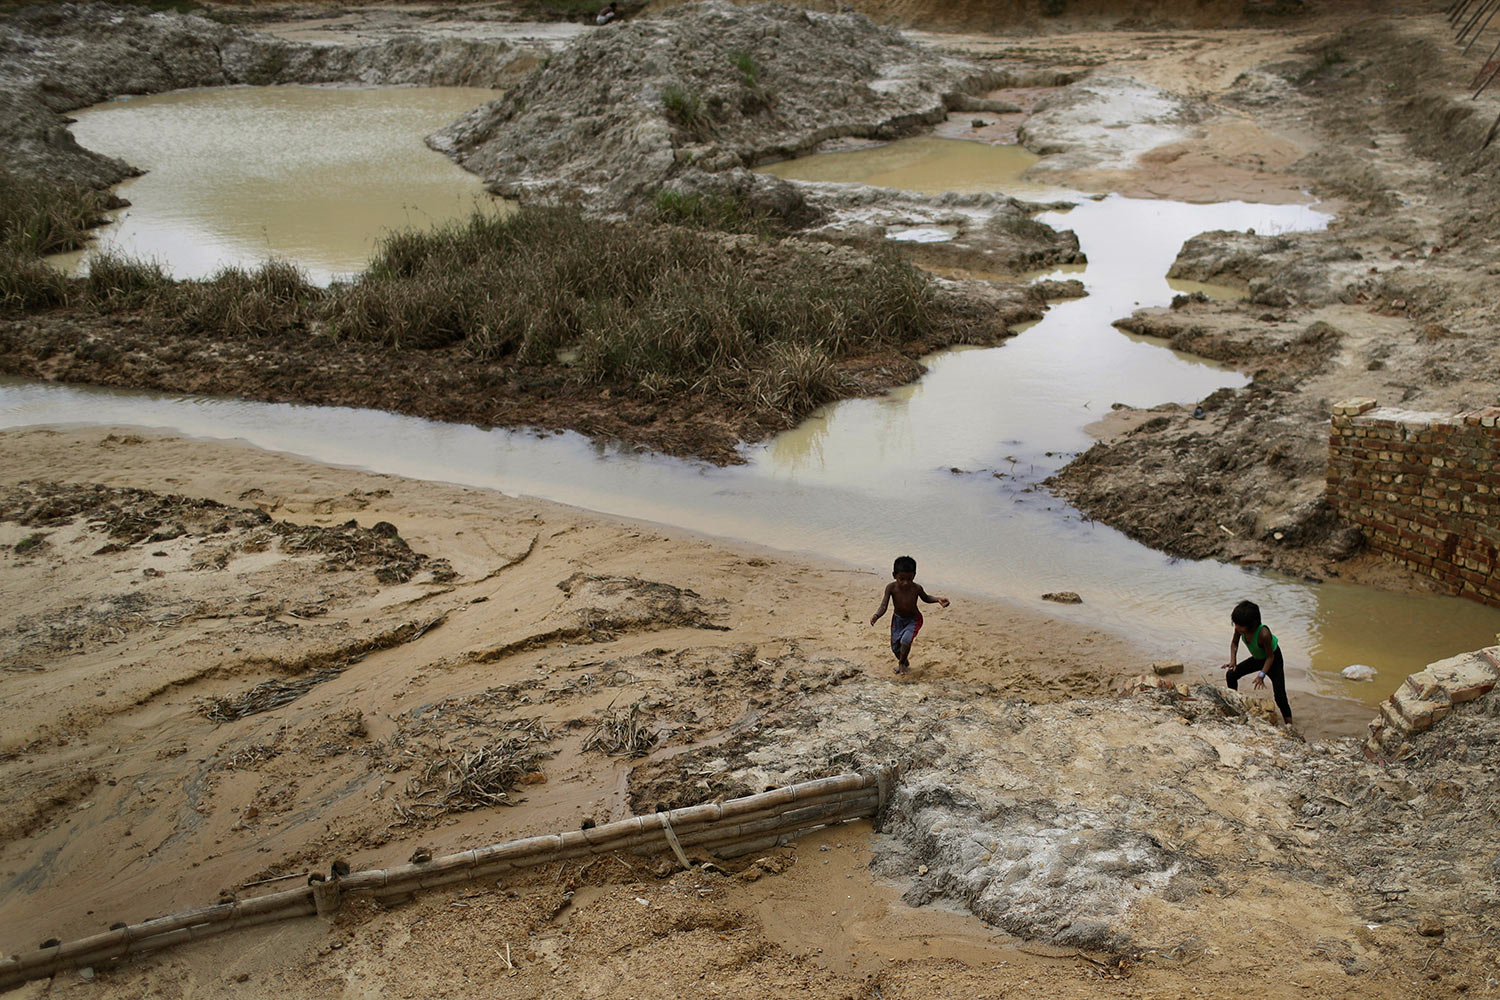 Rohingya children play next to a river in the Kutupalong refugee camp in Bangladesh on Thursday, June 28, 2018. (AP Photo/Wong Maye-E)